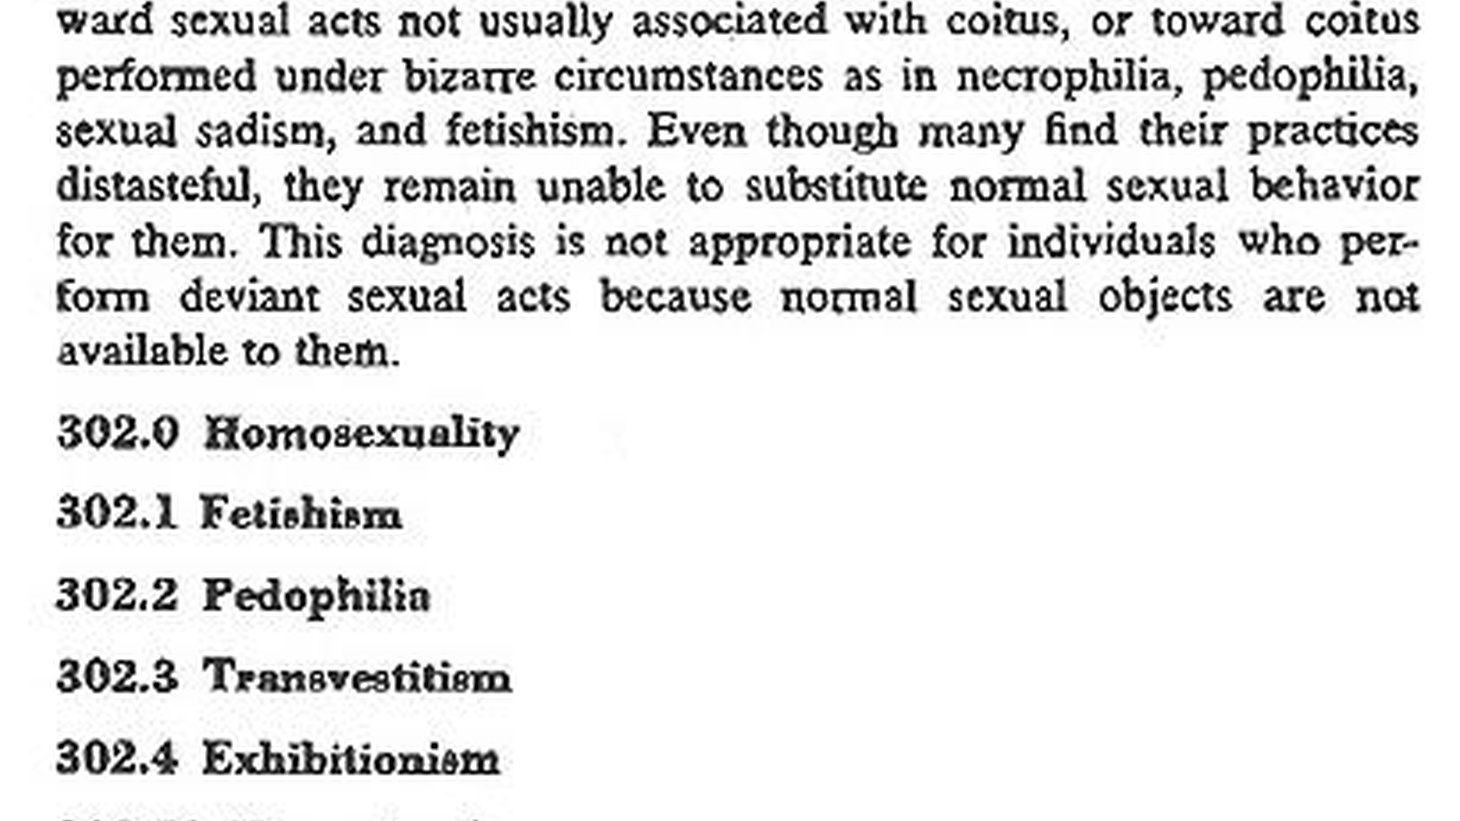 The story of how the American Psychiatric Association decided in 1973 that homosexuality was no longer a mental illness.